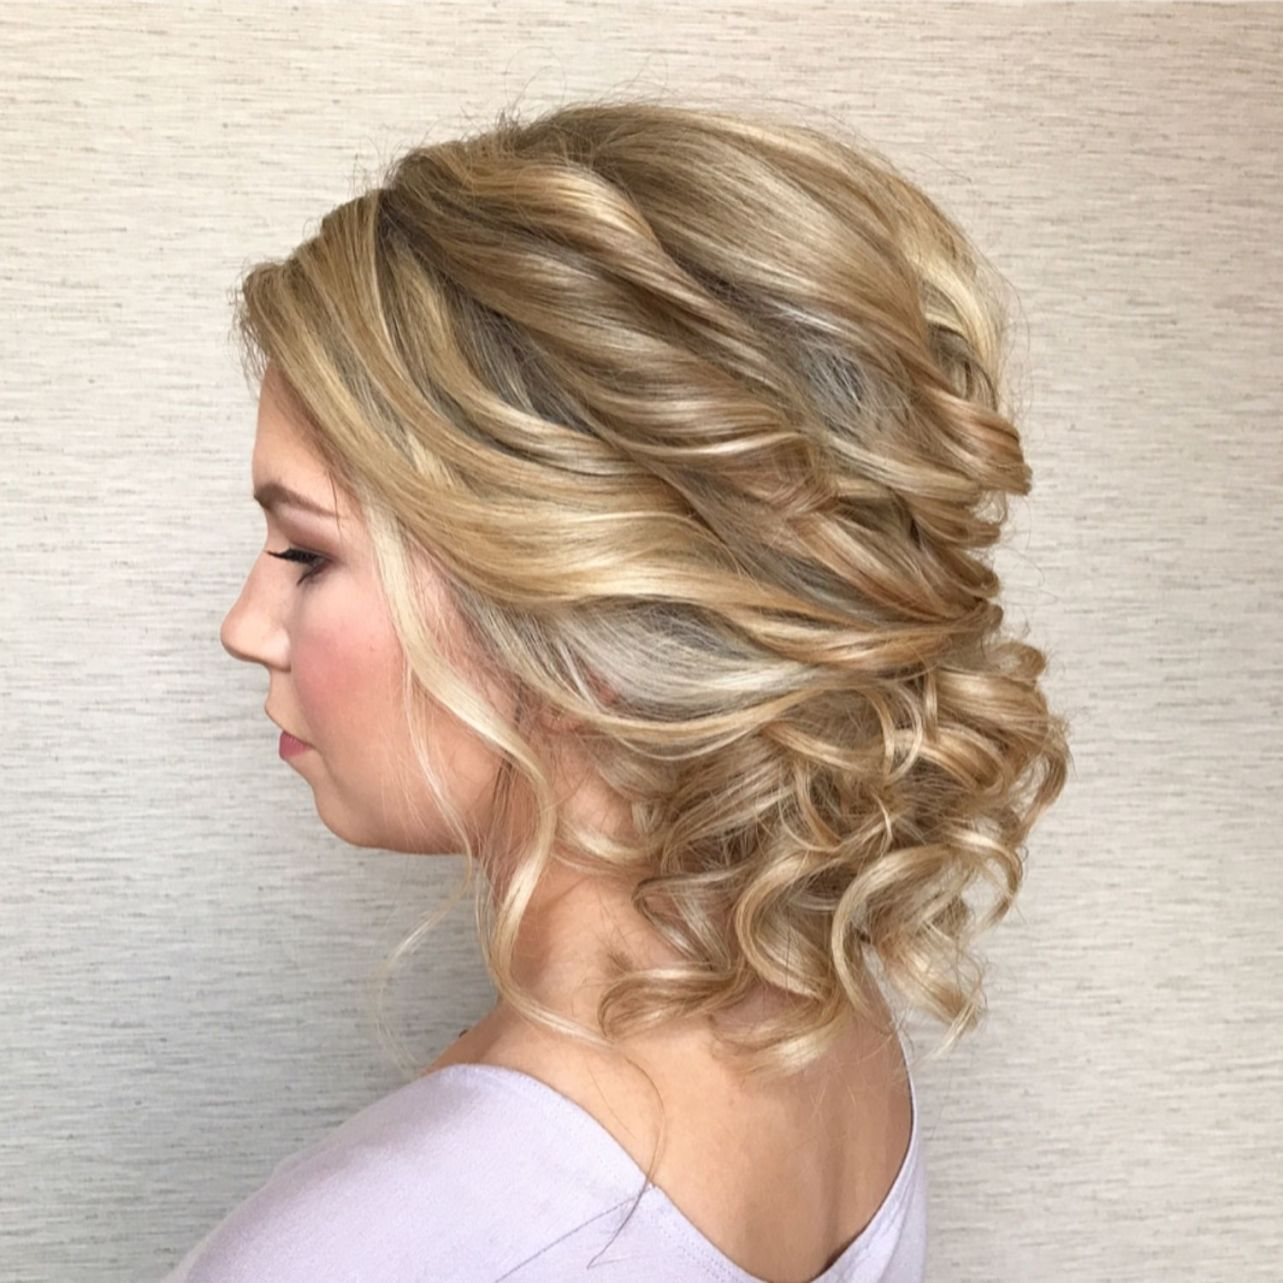 Blonde Curly Updo For Prom Medium Length Hair Styles Updos For Medium Length Hair Medium Hair Styles